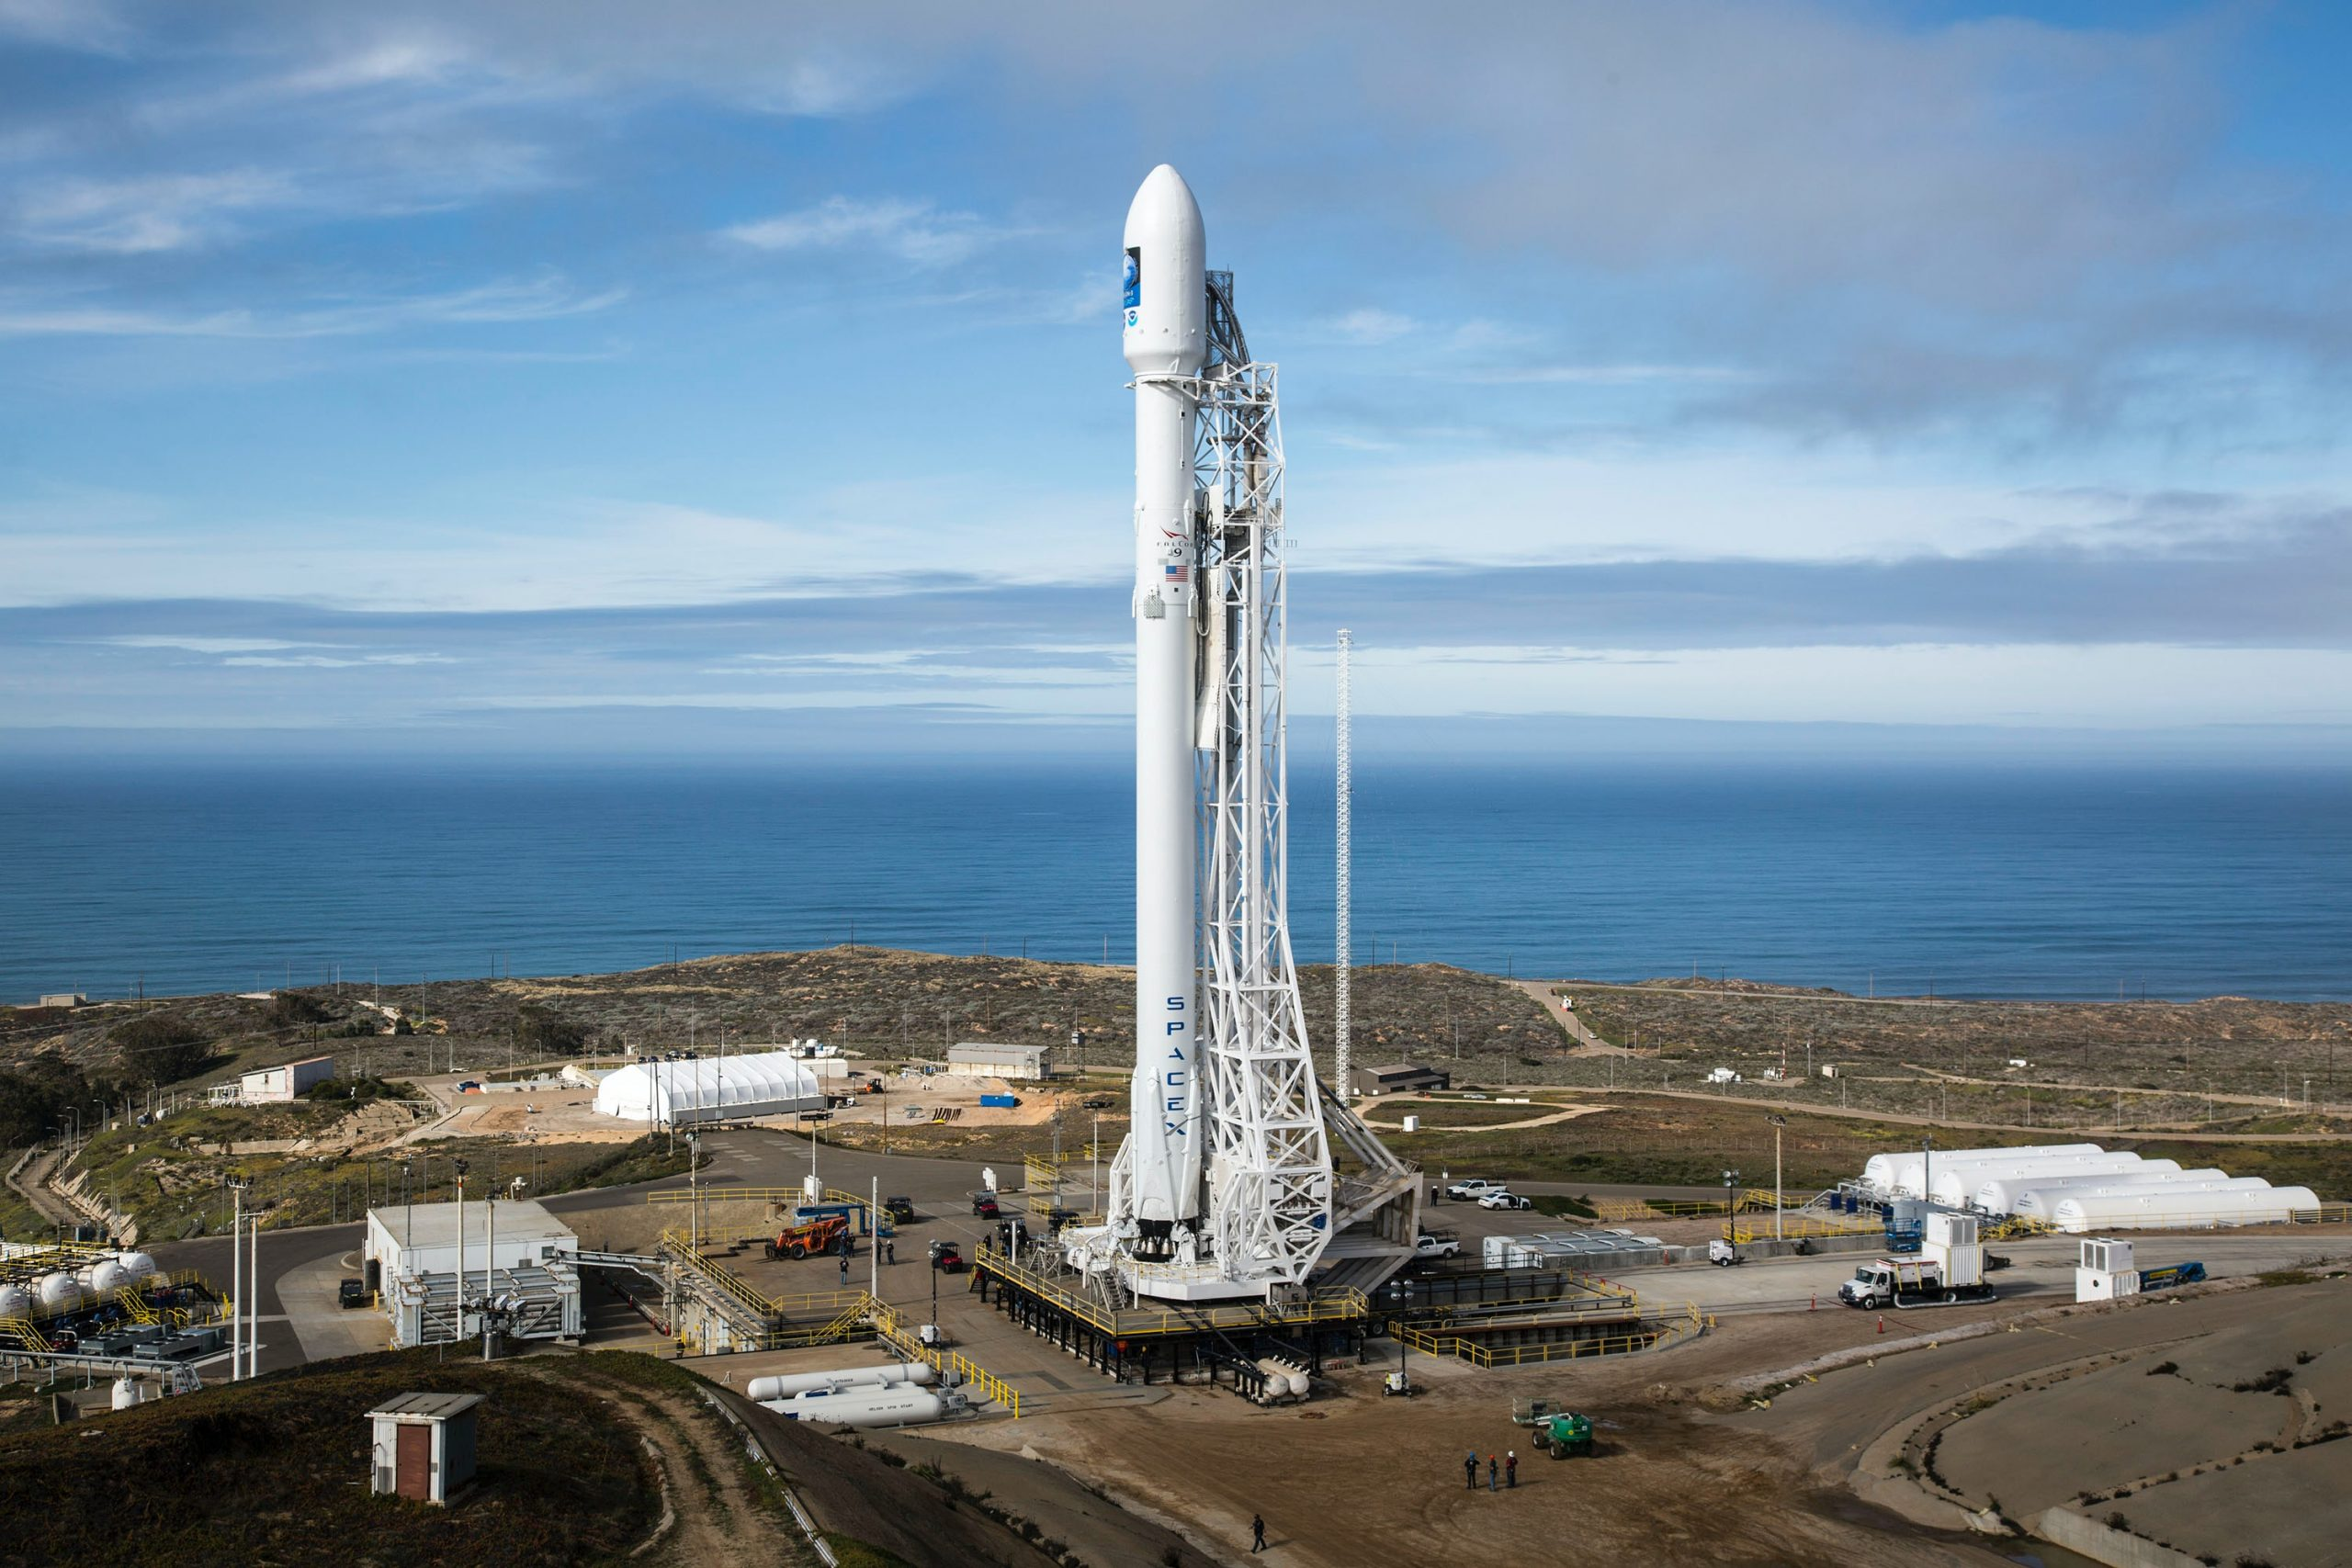 Elon Musk's SpaceX rocket launches into space!